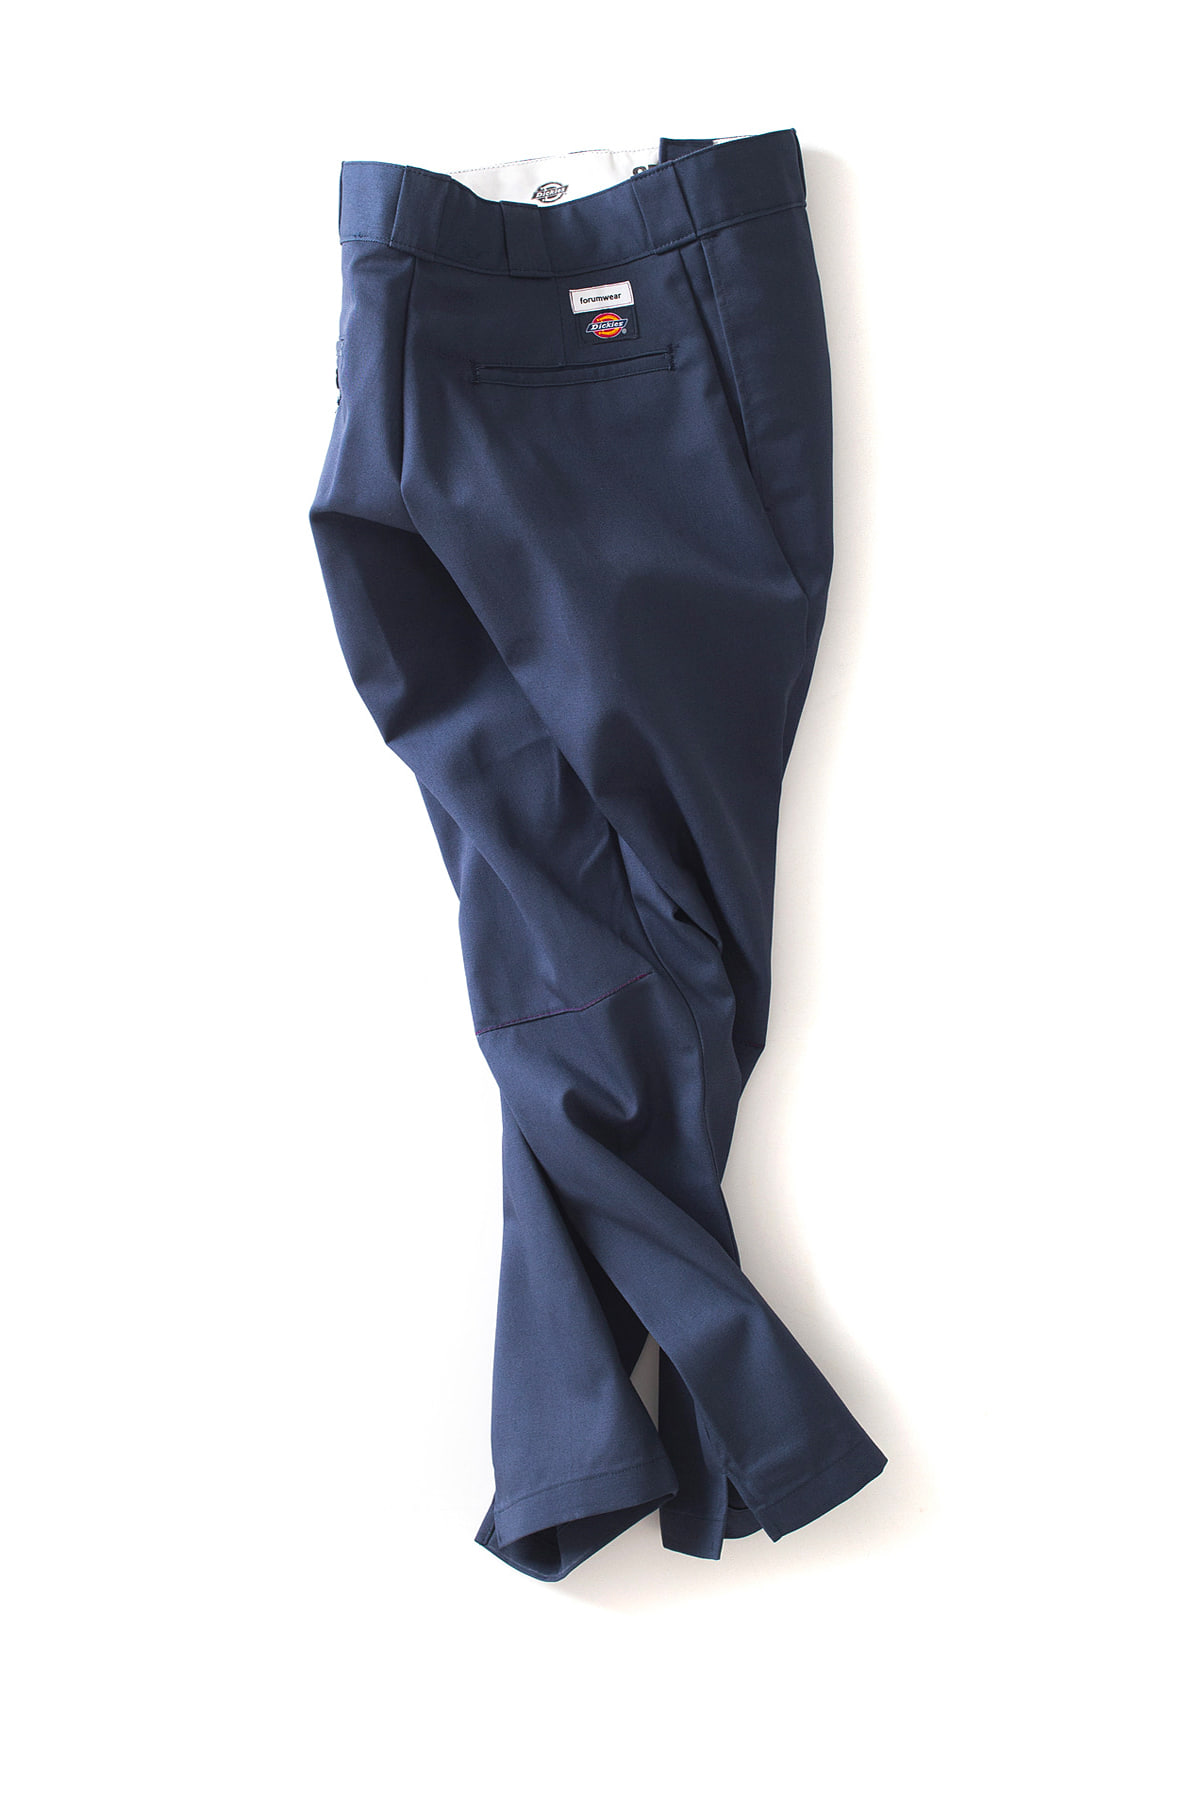 forumwear : 874 Remake Pants (Navy)